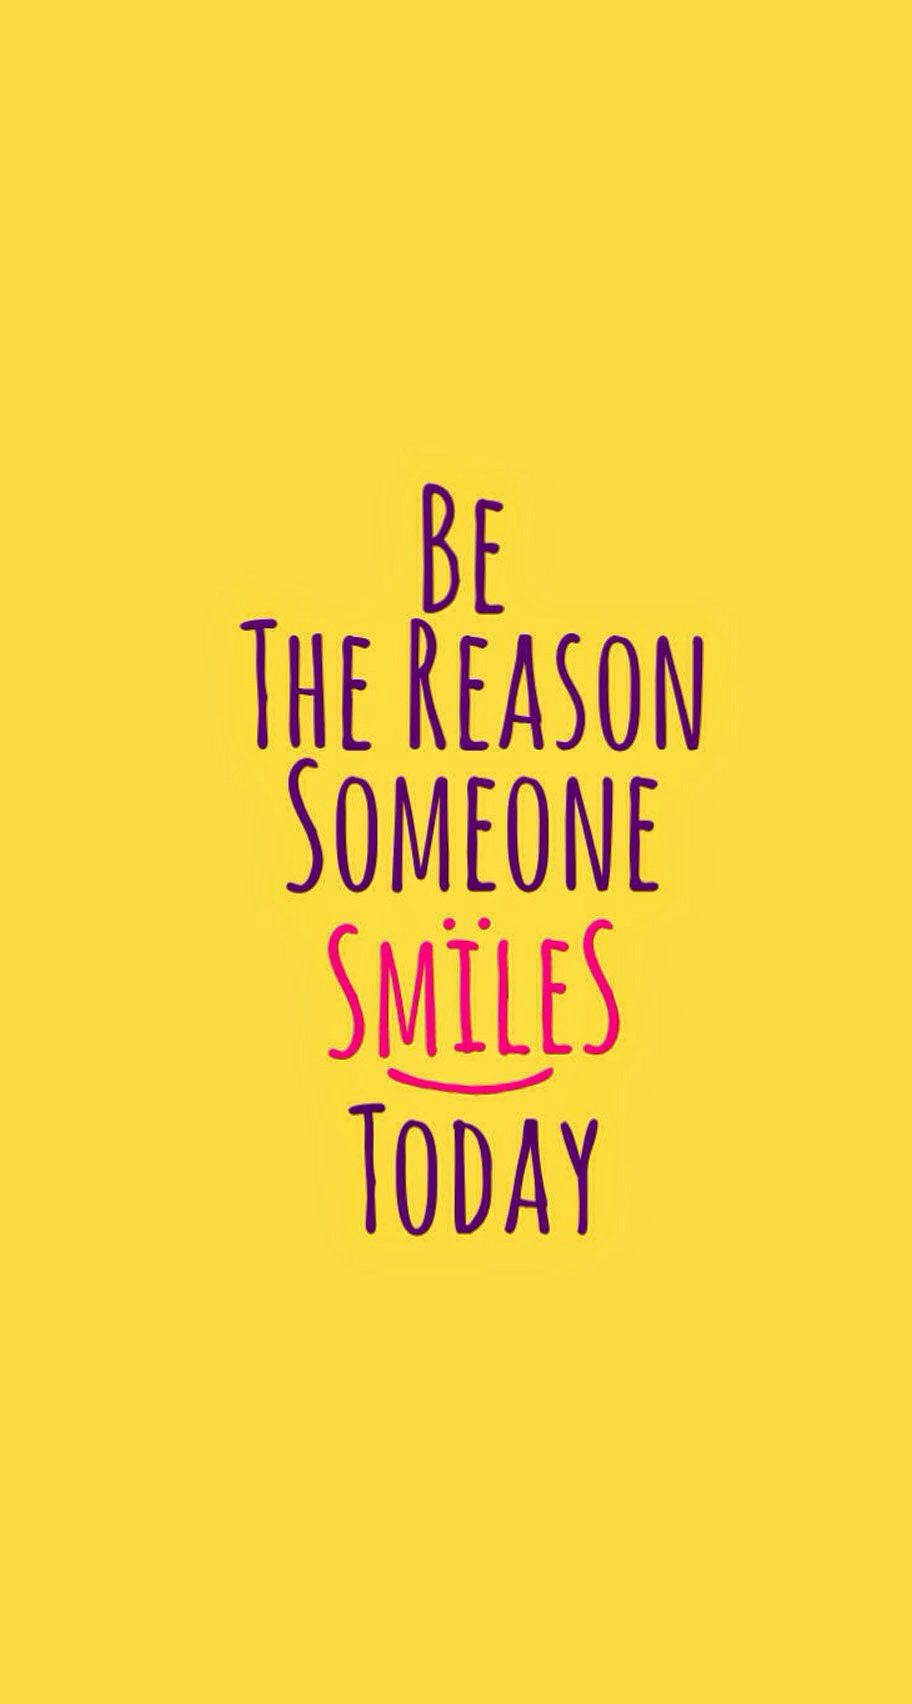 Be the reason someone smiles today Funny quotes wallpaper 912x1704